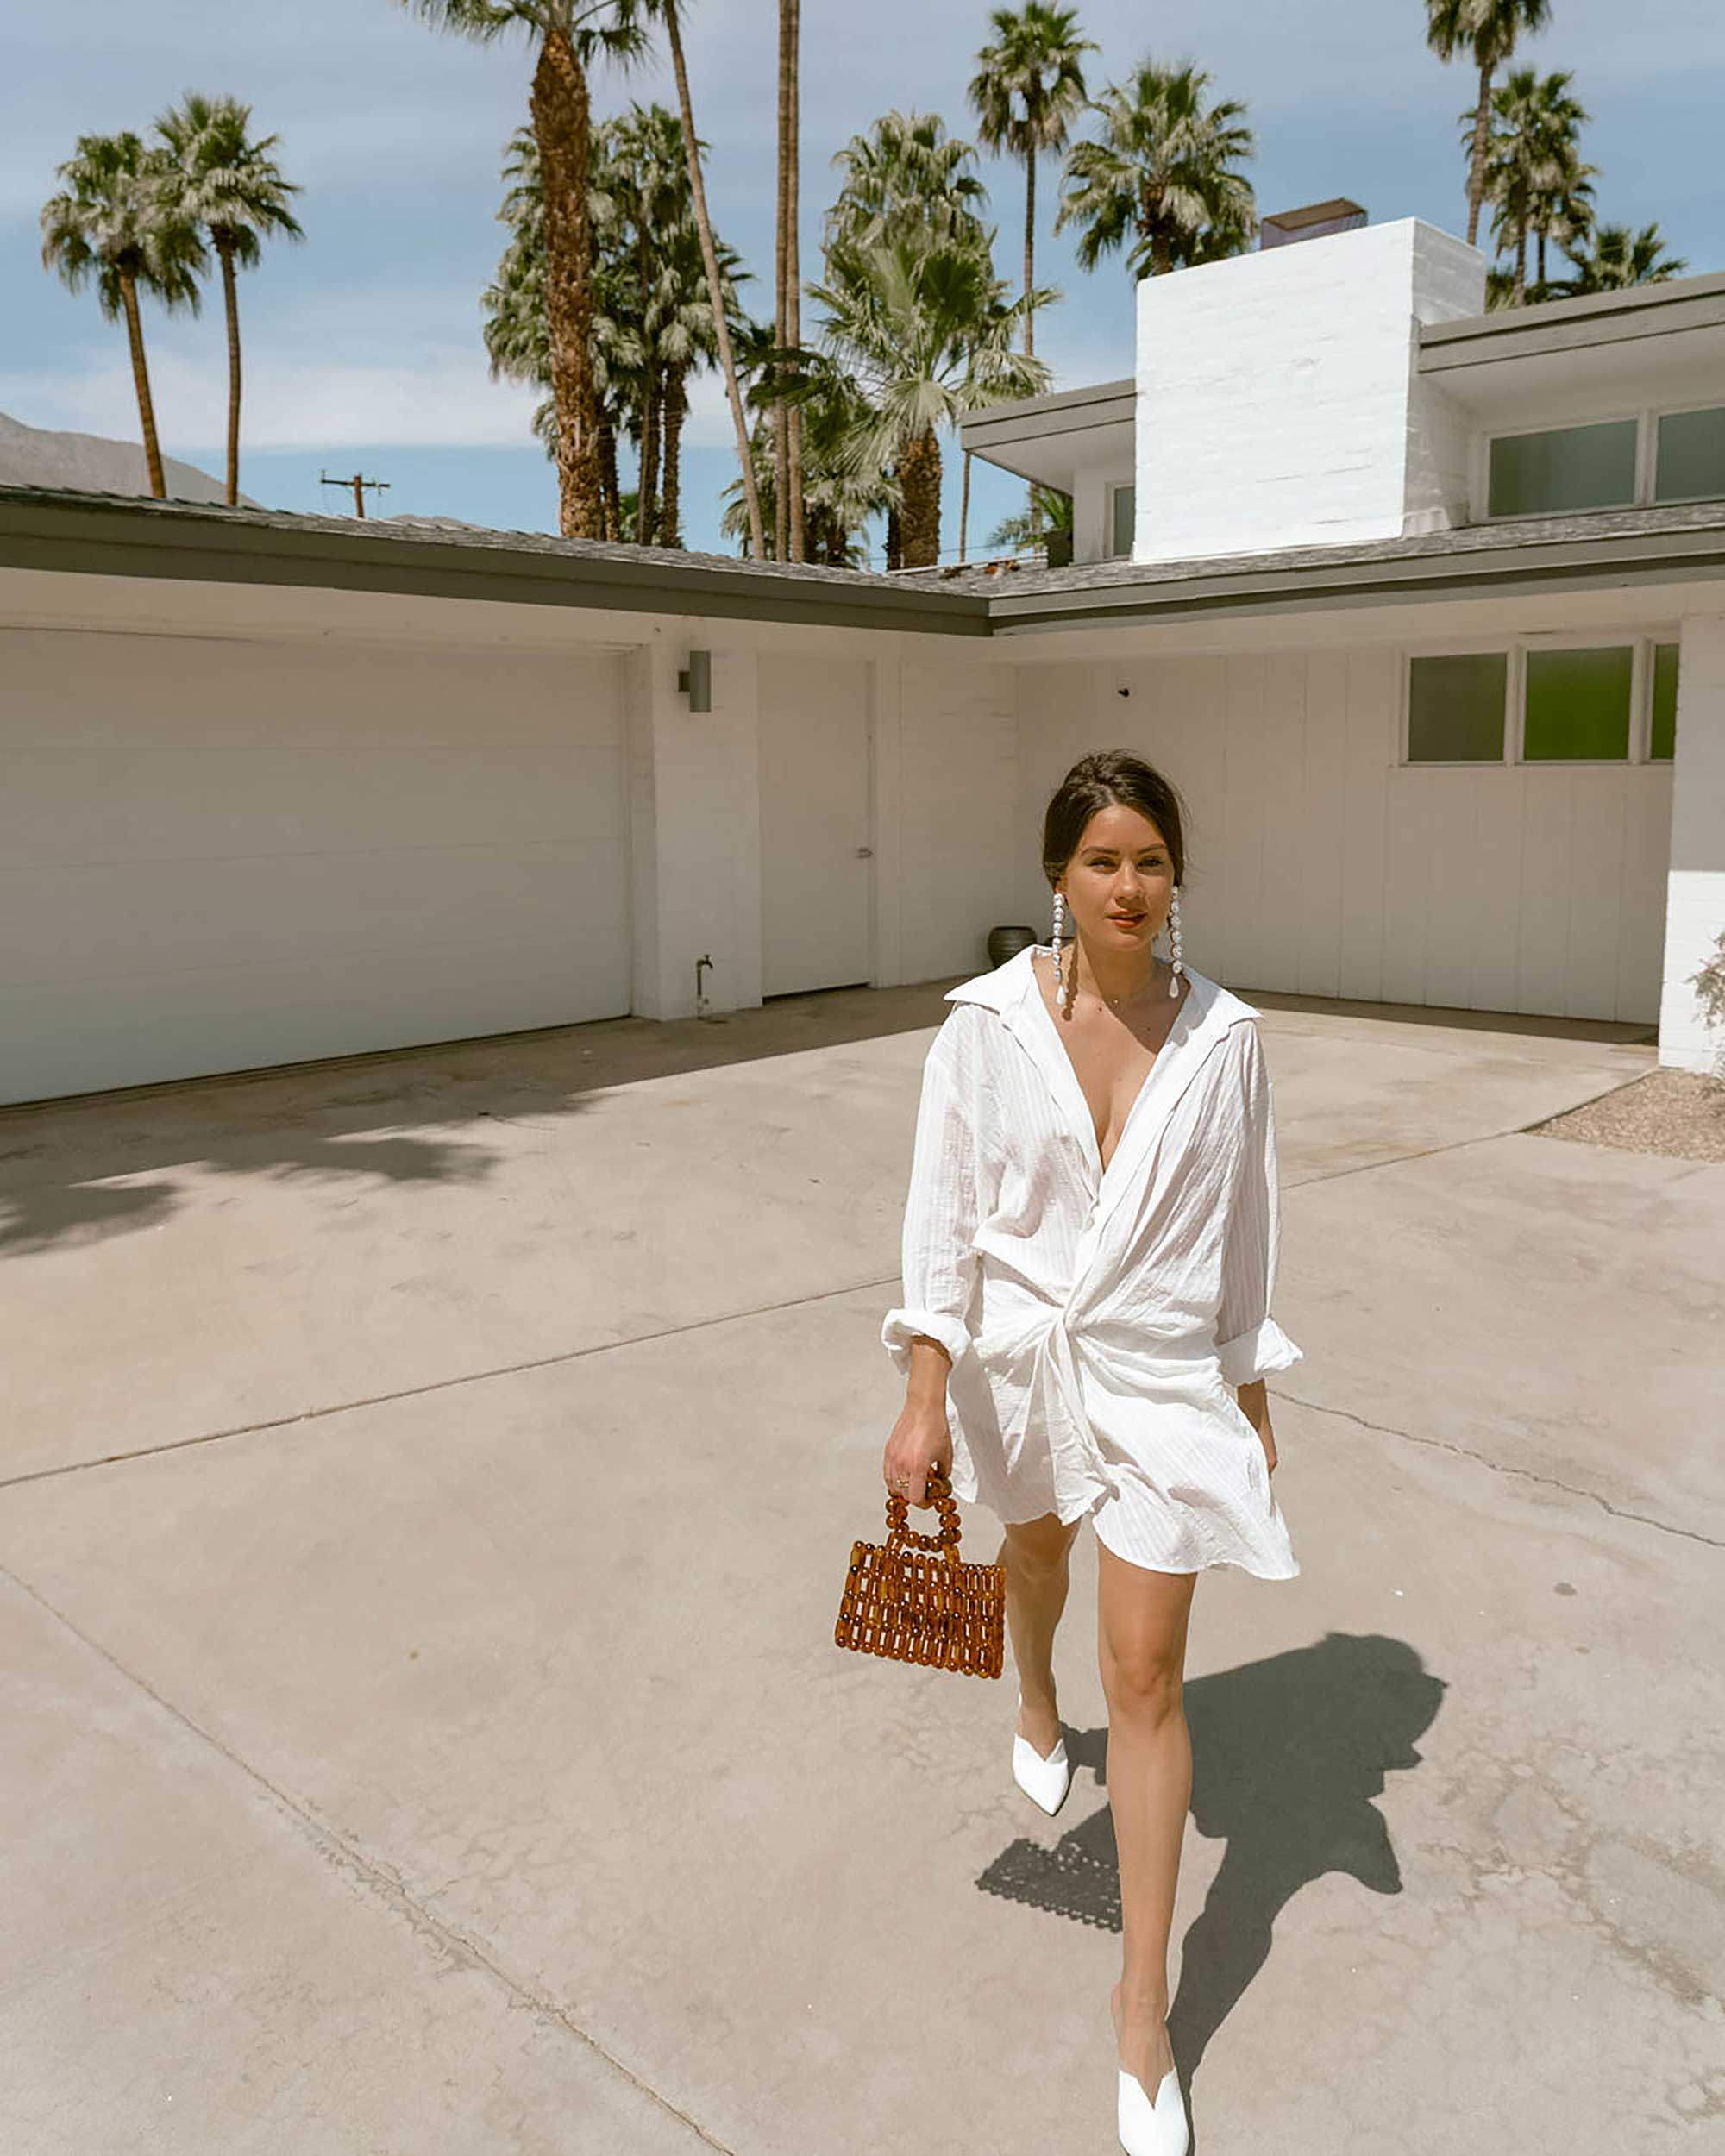 Sarah Butler of Sarah Styles Seattle wears Jacquemus Alassio draped white cotton mini dress and Cult Gaia Acrylic Cora Clutch in tortoise shell brown Palm Springs Outfit | @sarahchristine 7.jpg